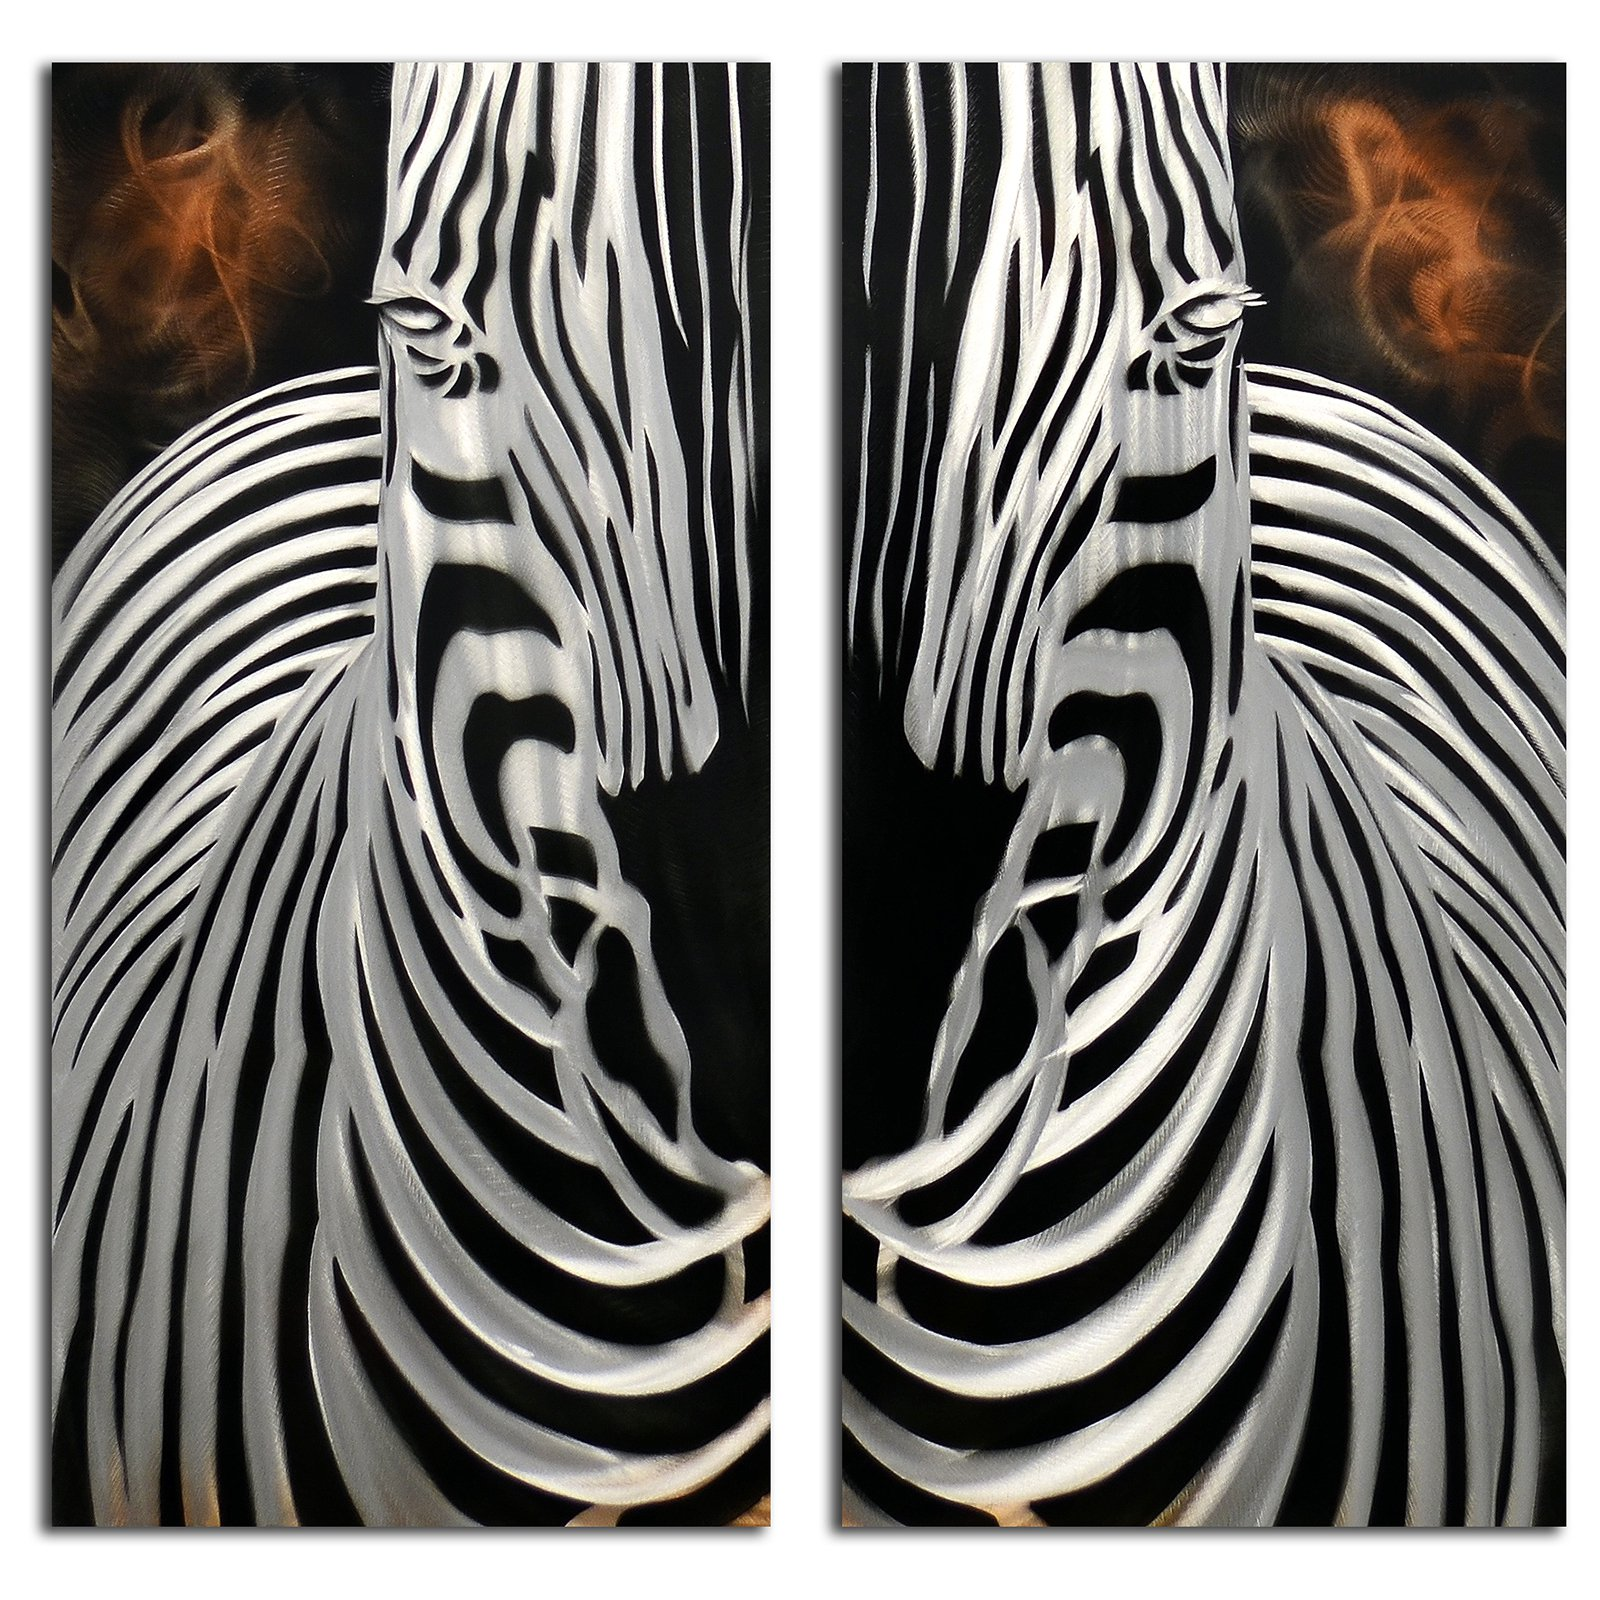 OMAX Decor Zebra Overlooking Wall Art - Set of 2